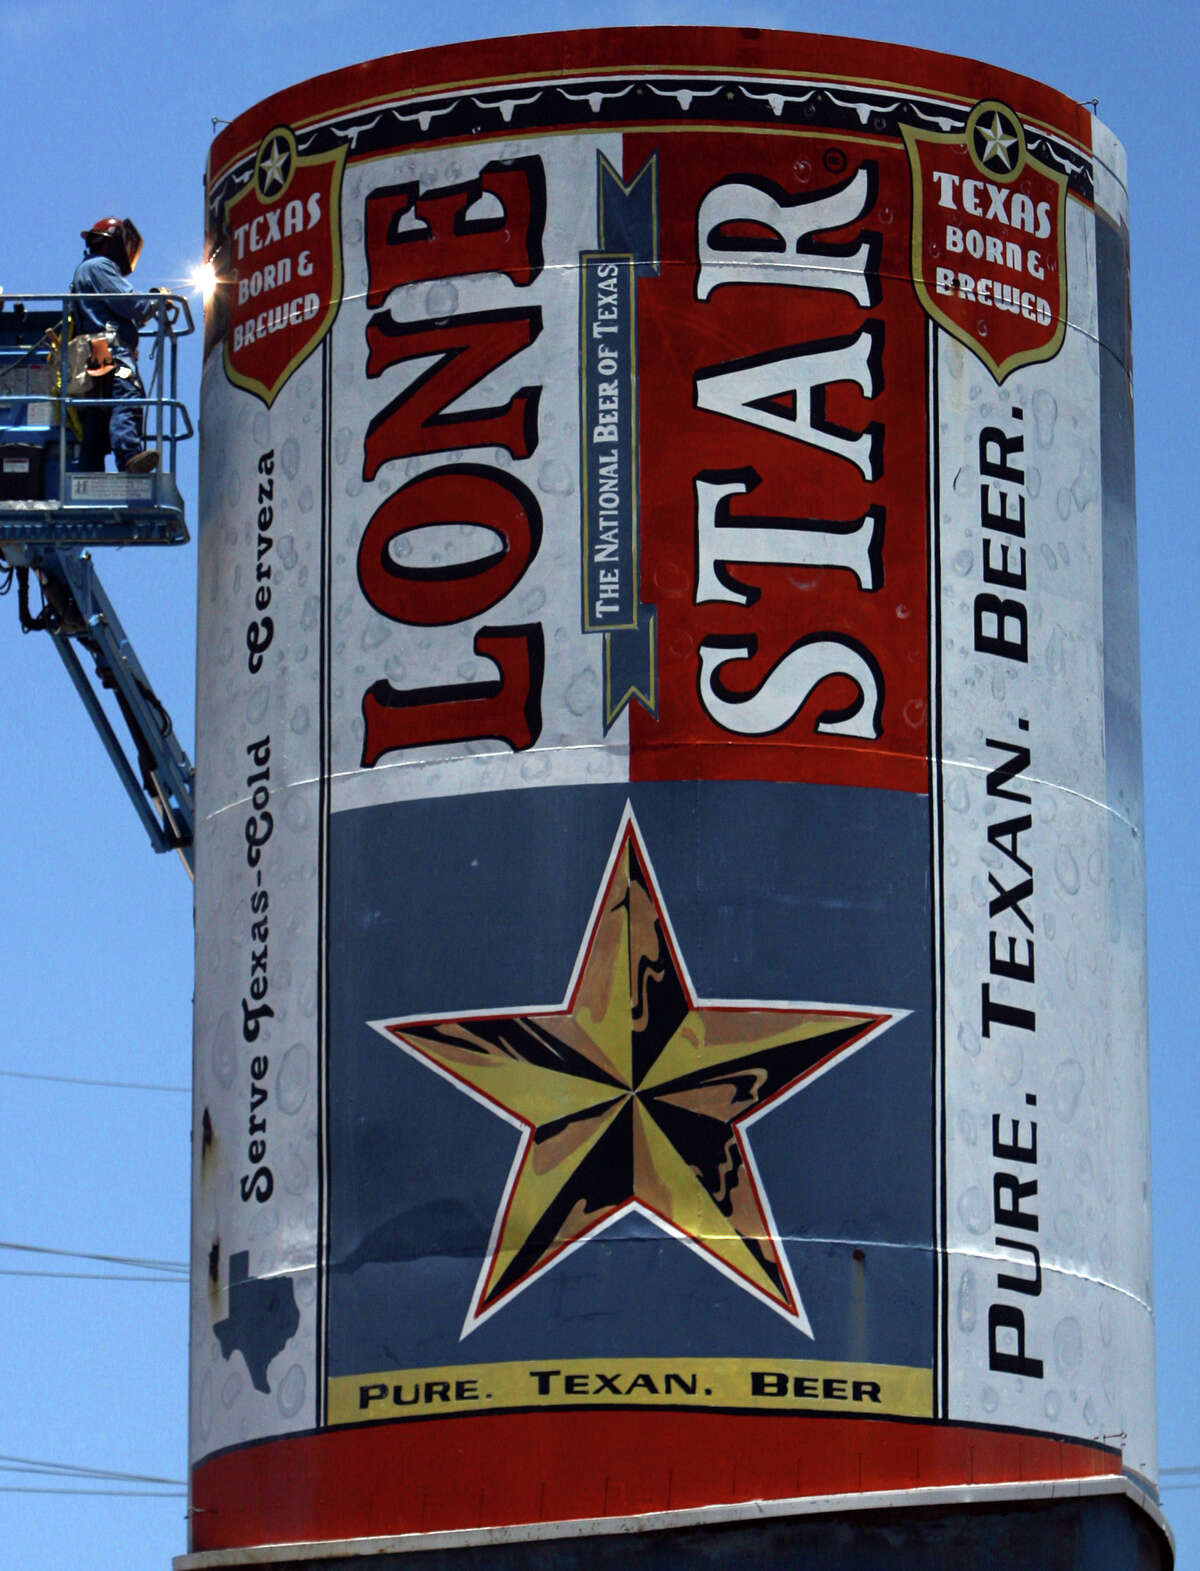 In 1883, Beer baron Adolphus Busch and his partners built the Lone Star Brewery in San Antonio. It was the first large mechanized brewery in Texas, according to the brand's corporate history. Olympic Brewing Co. bought Lone Star in 1976 and then sold it to G. Heileman Brewing Co. in 1983. Stroh bought Heileman in 1996 and moved Lone Star production out of San Antonio. Pabst acquired the brand in 1999 and returned brewing to the brand's home city. The original Lone Star Brewery is now the San Antonio Museum of Art.